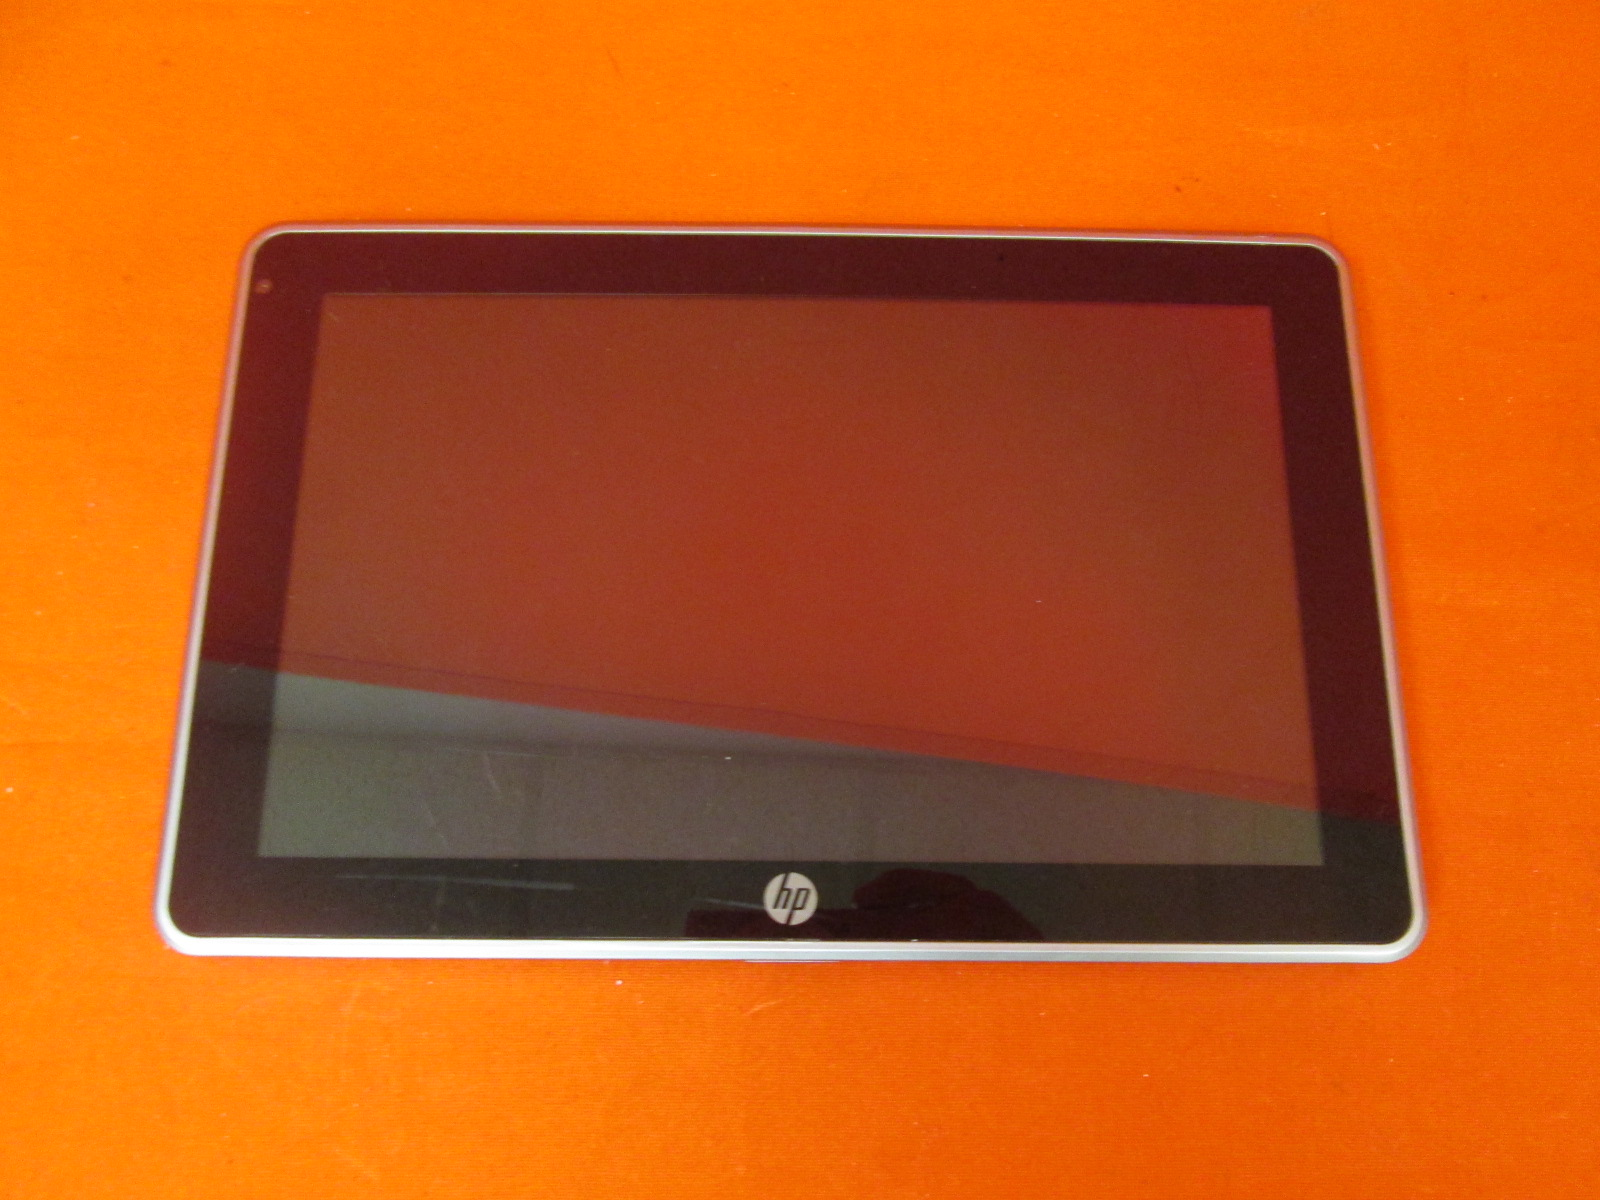 Image 0 of Broken HP Slate 500 Tablet PC Atom Z540 1.86GHZ 64GB SSD 2GB 8.9